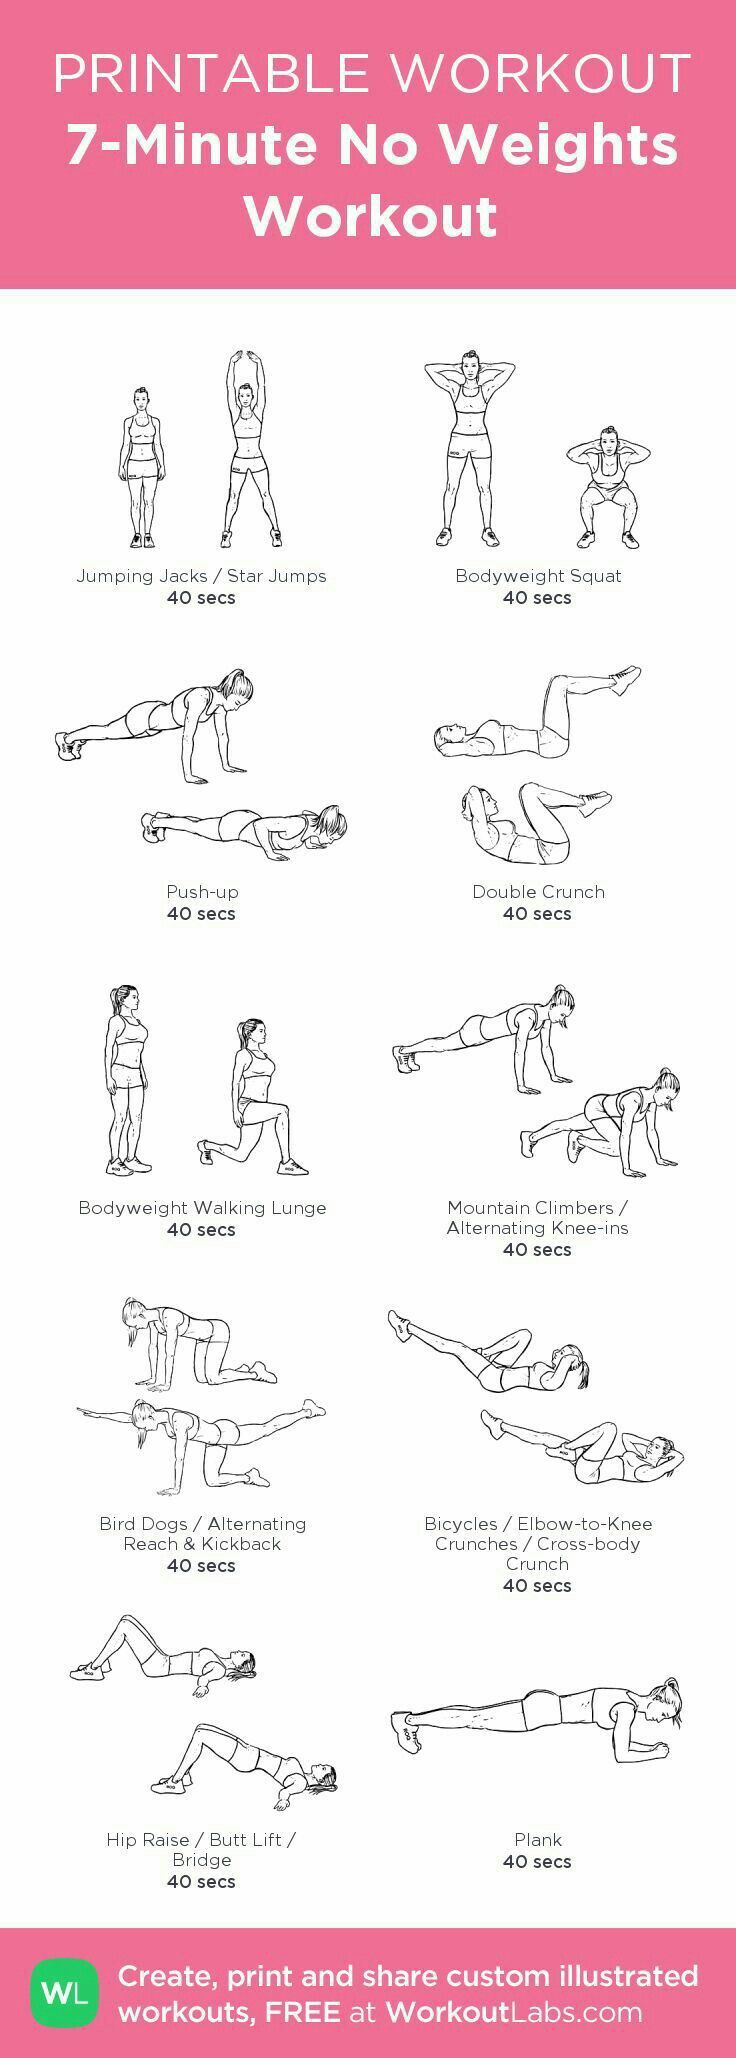 8 best Exercise images on Pinterest | Exercise routines, Diets and ...